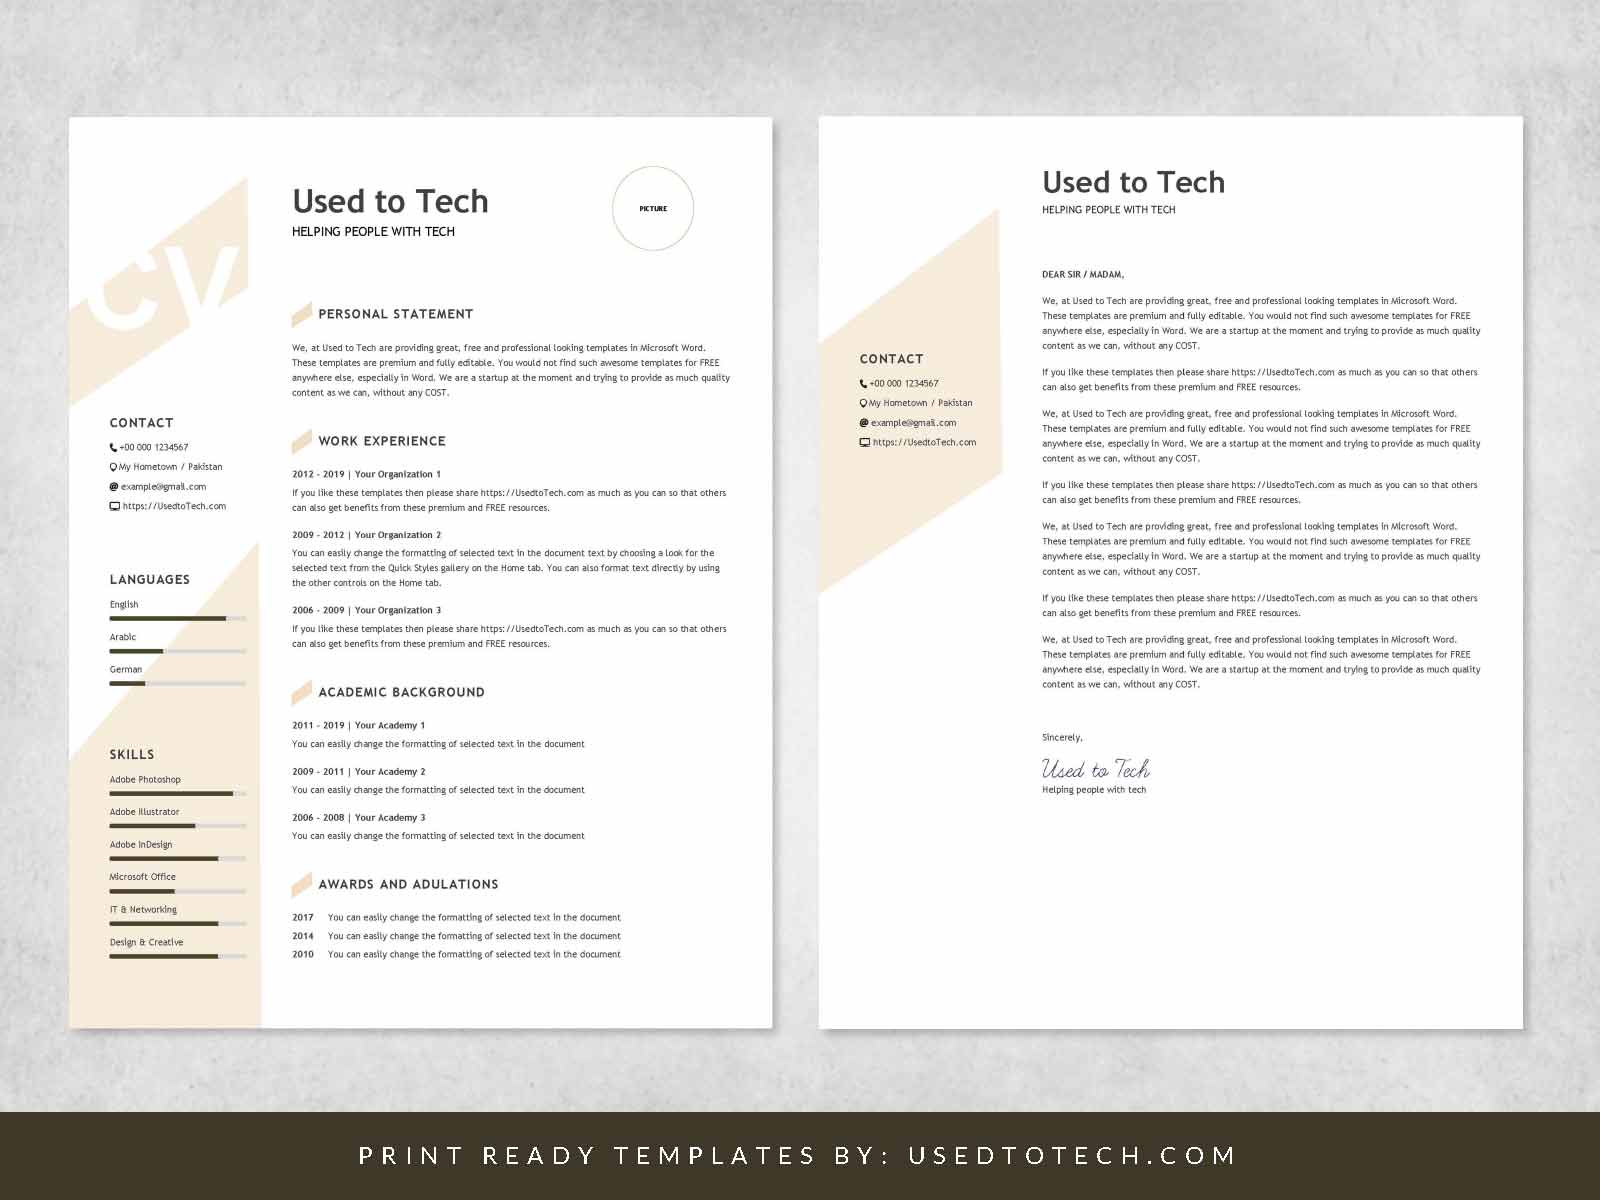 Modern resume template in Word free - Used to Tech